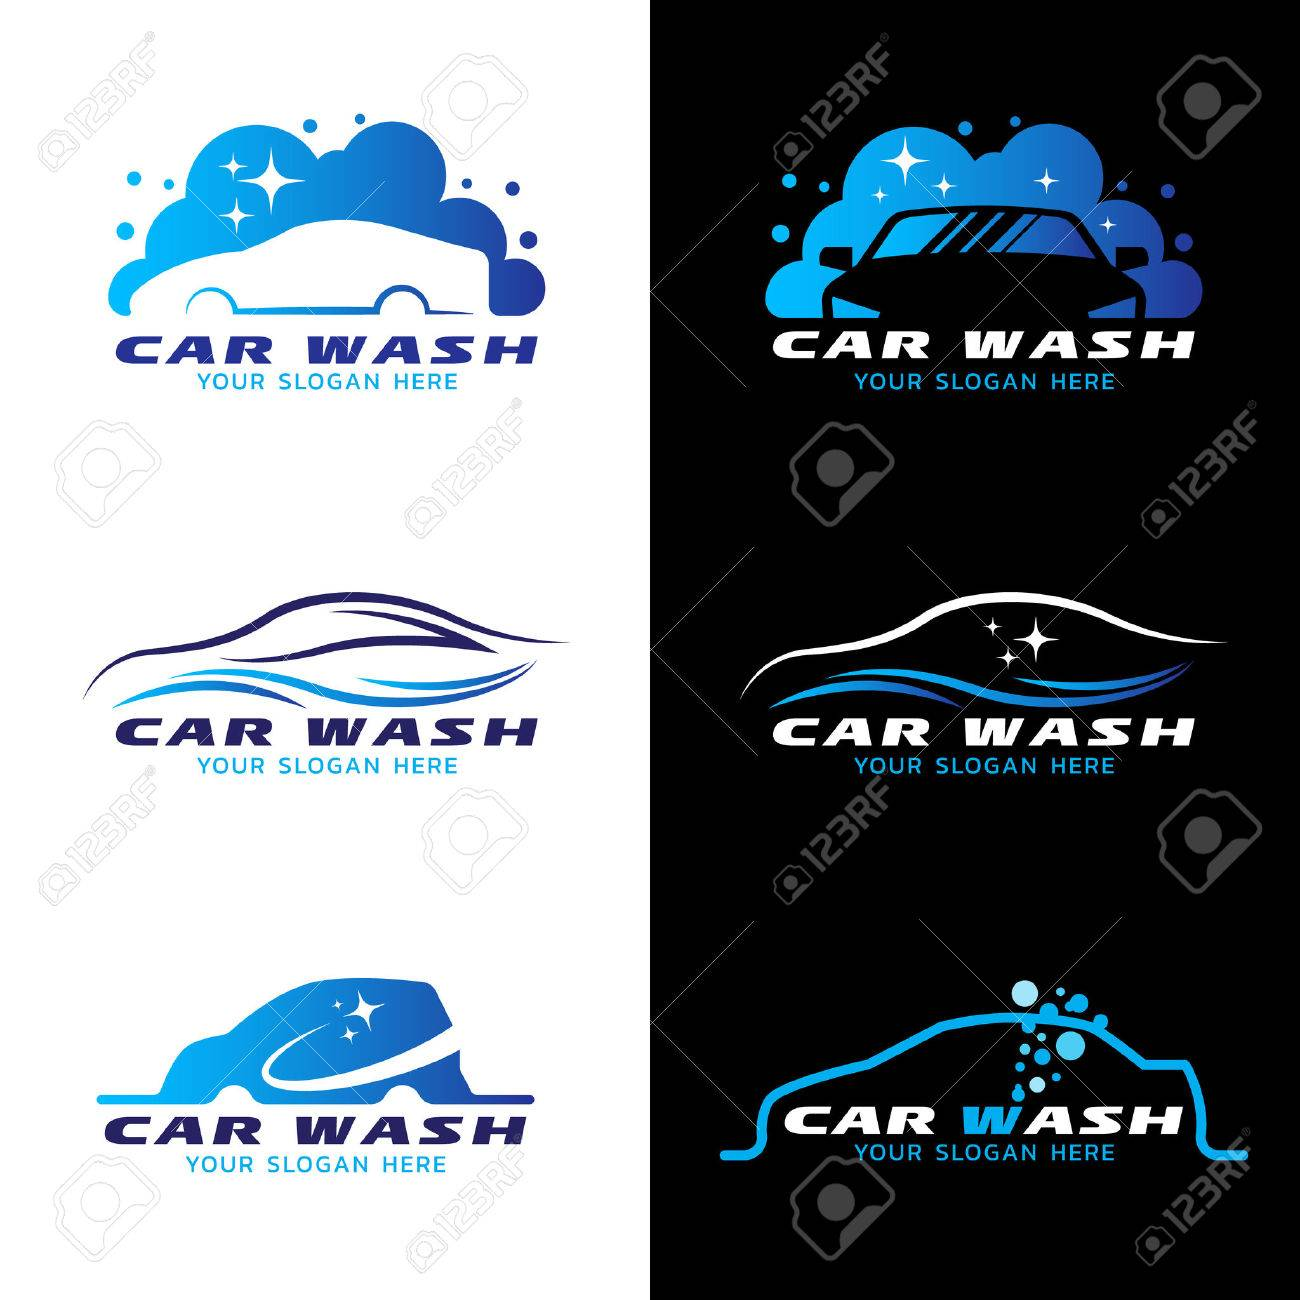 Car Wash Service Logo Vector Set Design Royalty Free Cliparts